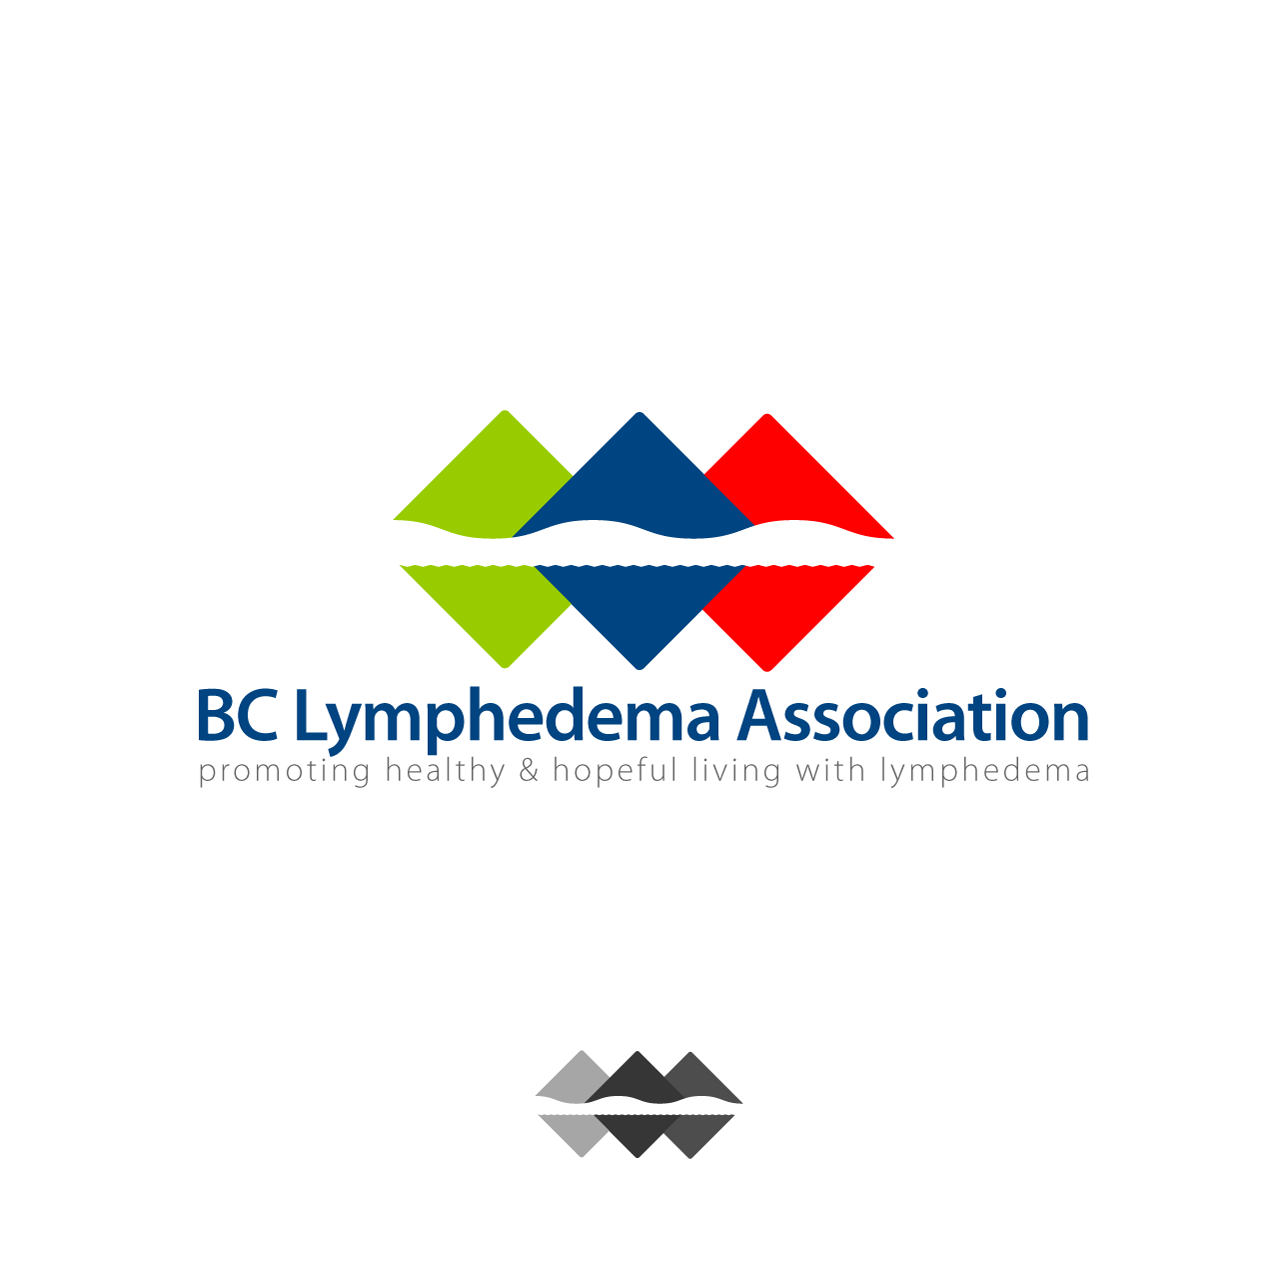 Logo Design by umxca - Entry No. 35 in the Logo Design Contest BC Lymphedema Association.